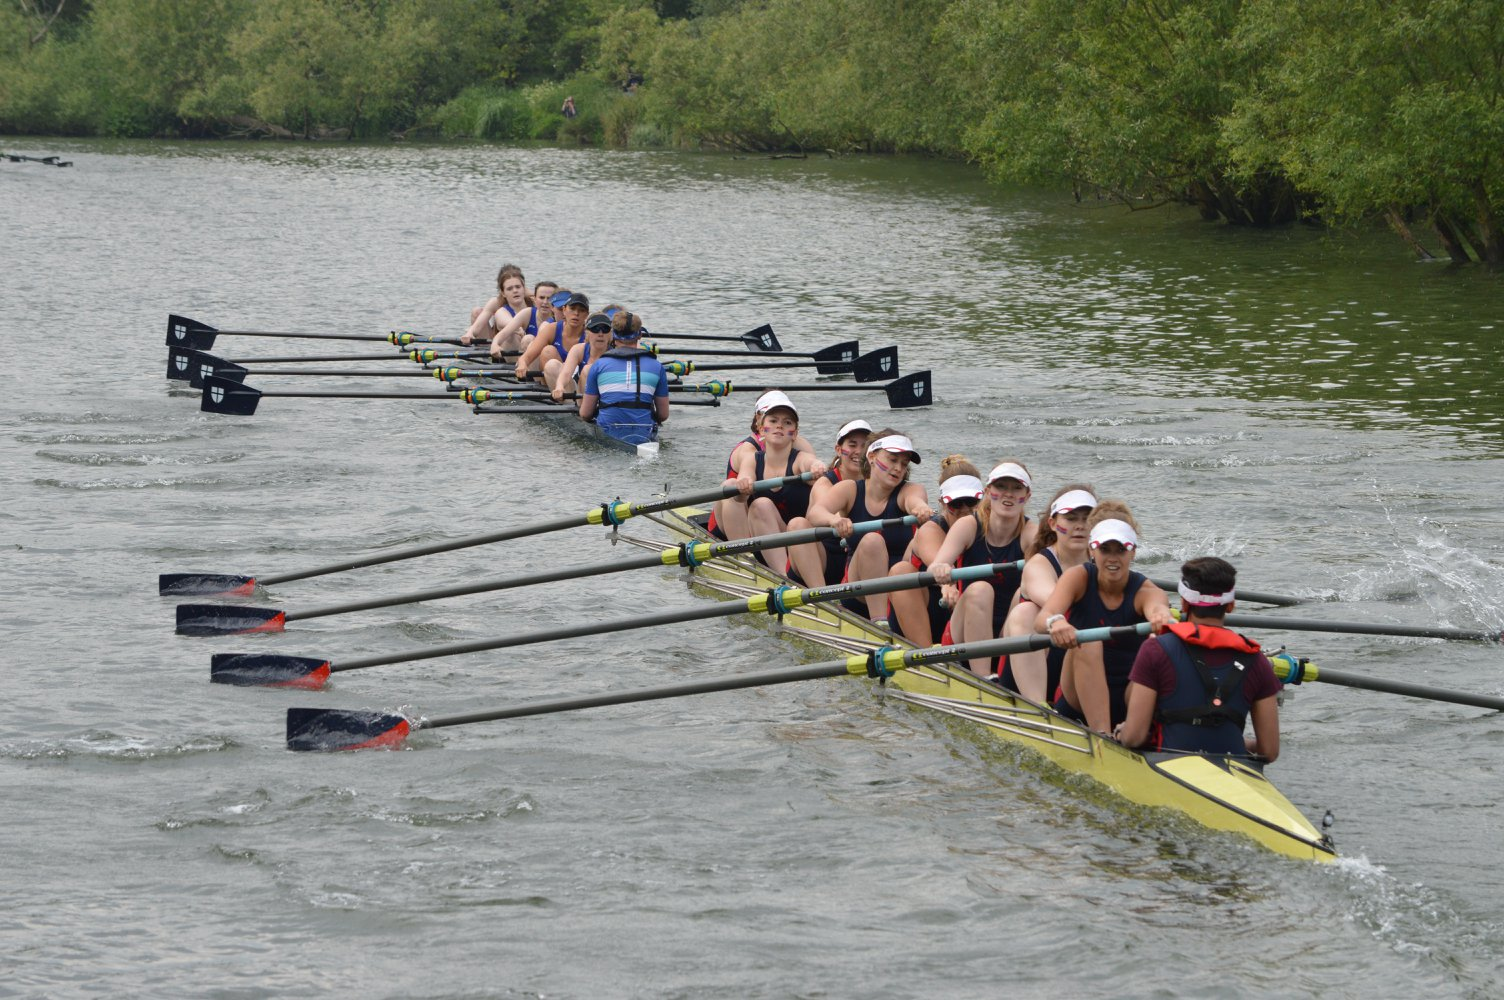 W1 Summer Eights 2018 (photo: Gareth Ardron)